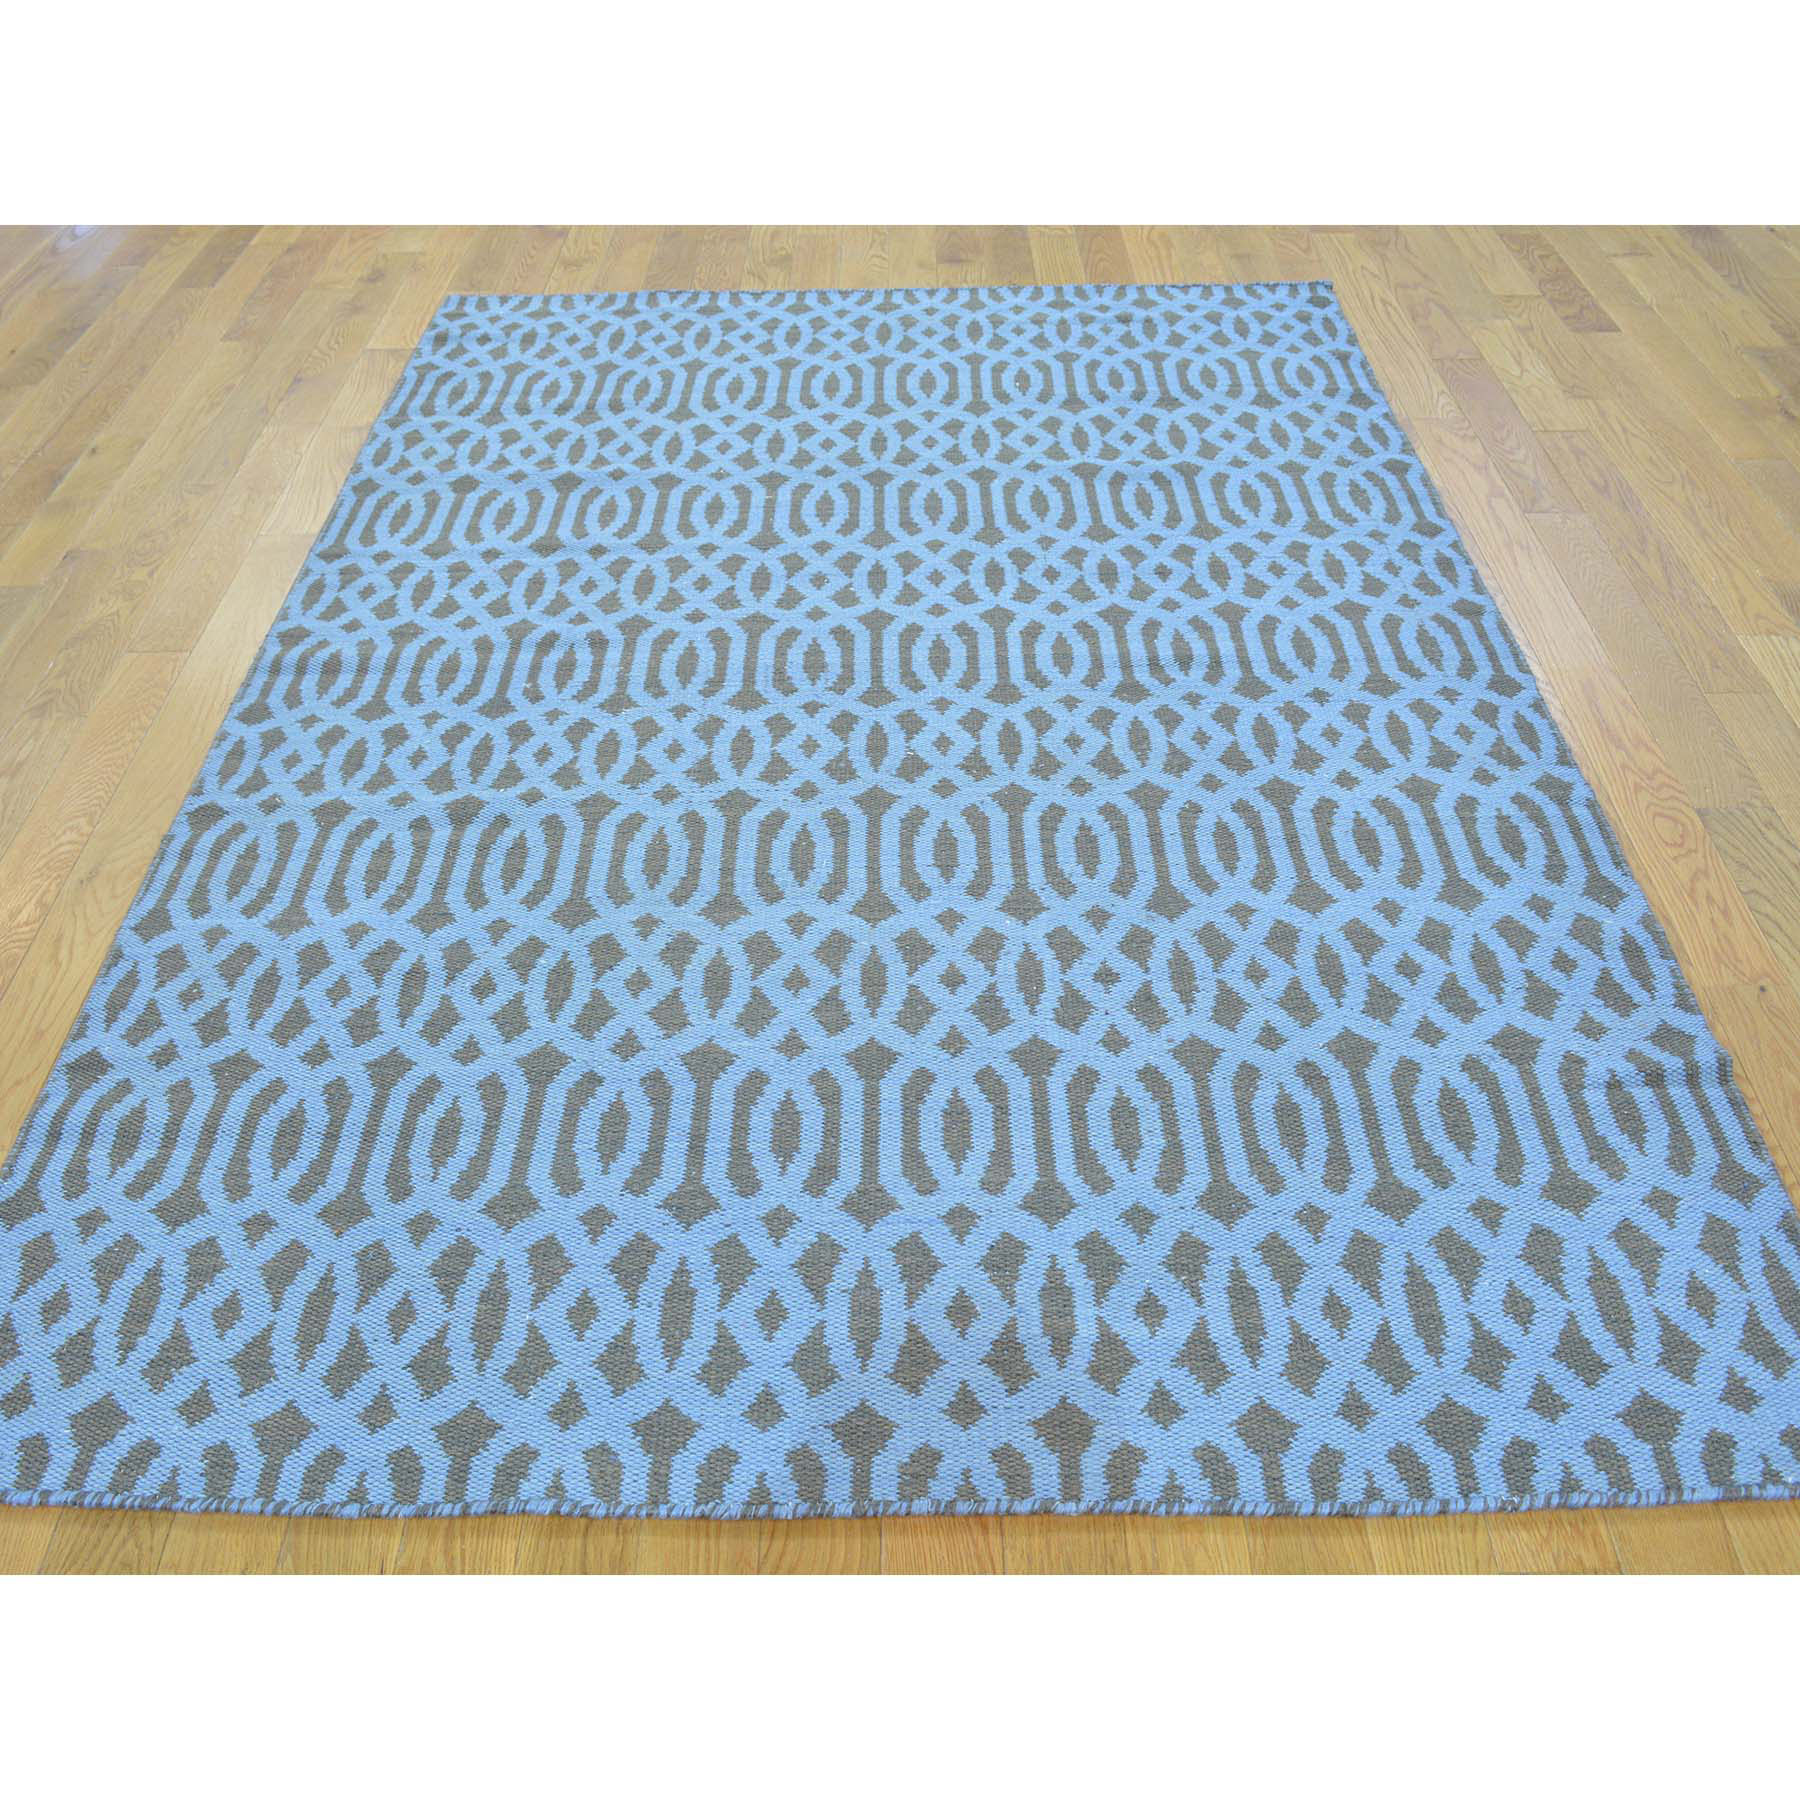 4-10 x7-2  Hand Woven Reversible Flat Weave Oriental Kilim Rug